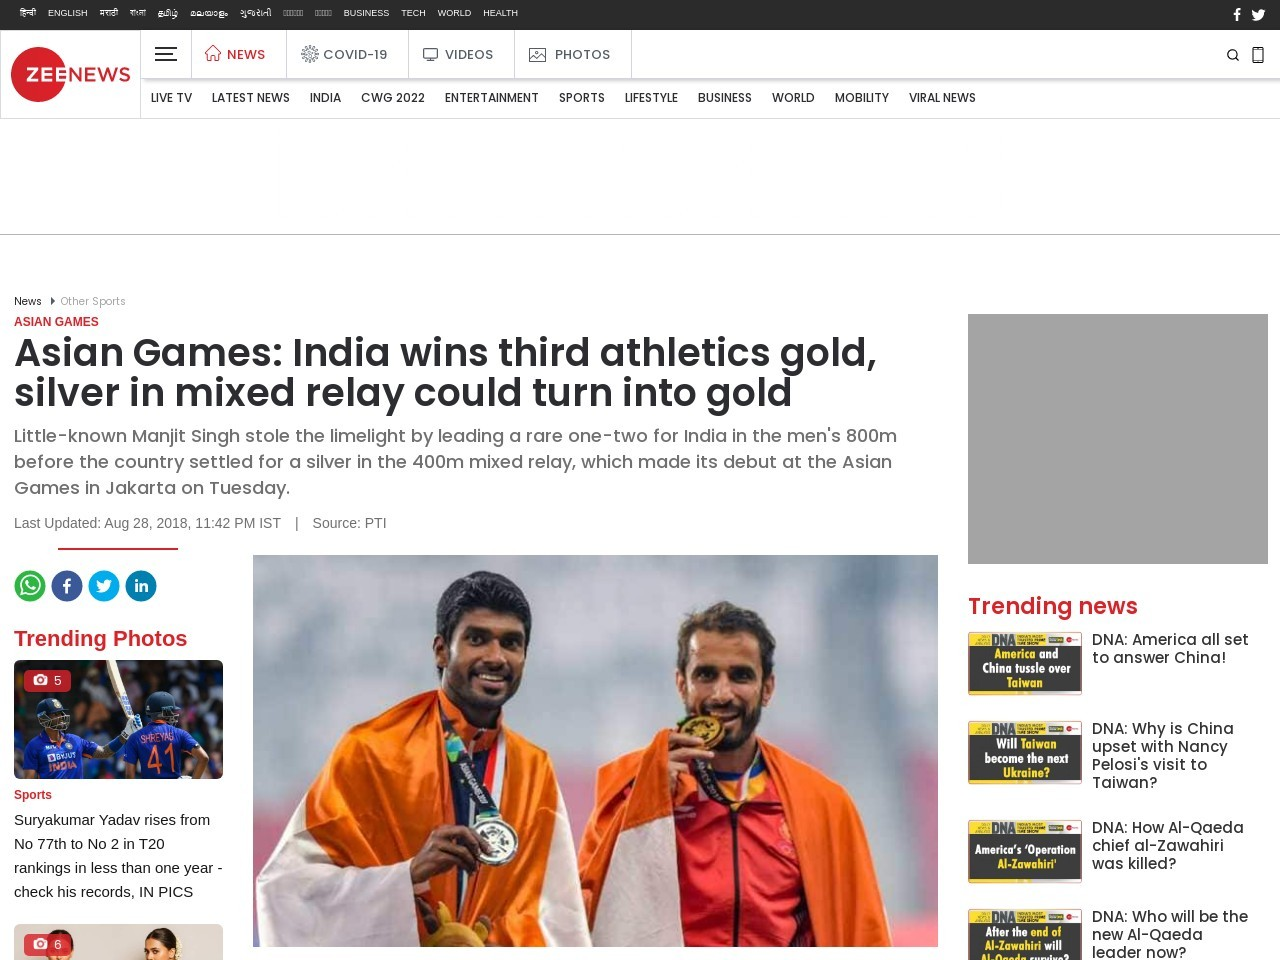 Asian Games: India wins third athletics gold, silver in mixed relay could turn into gold